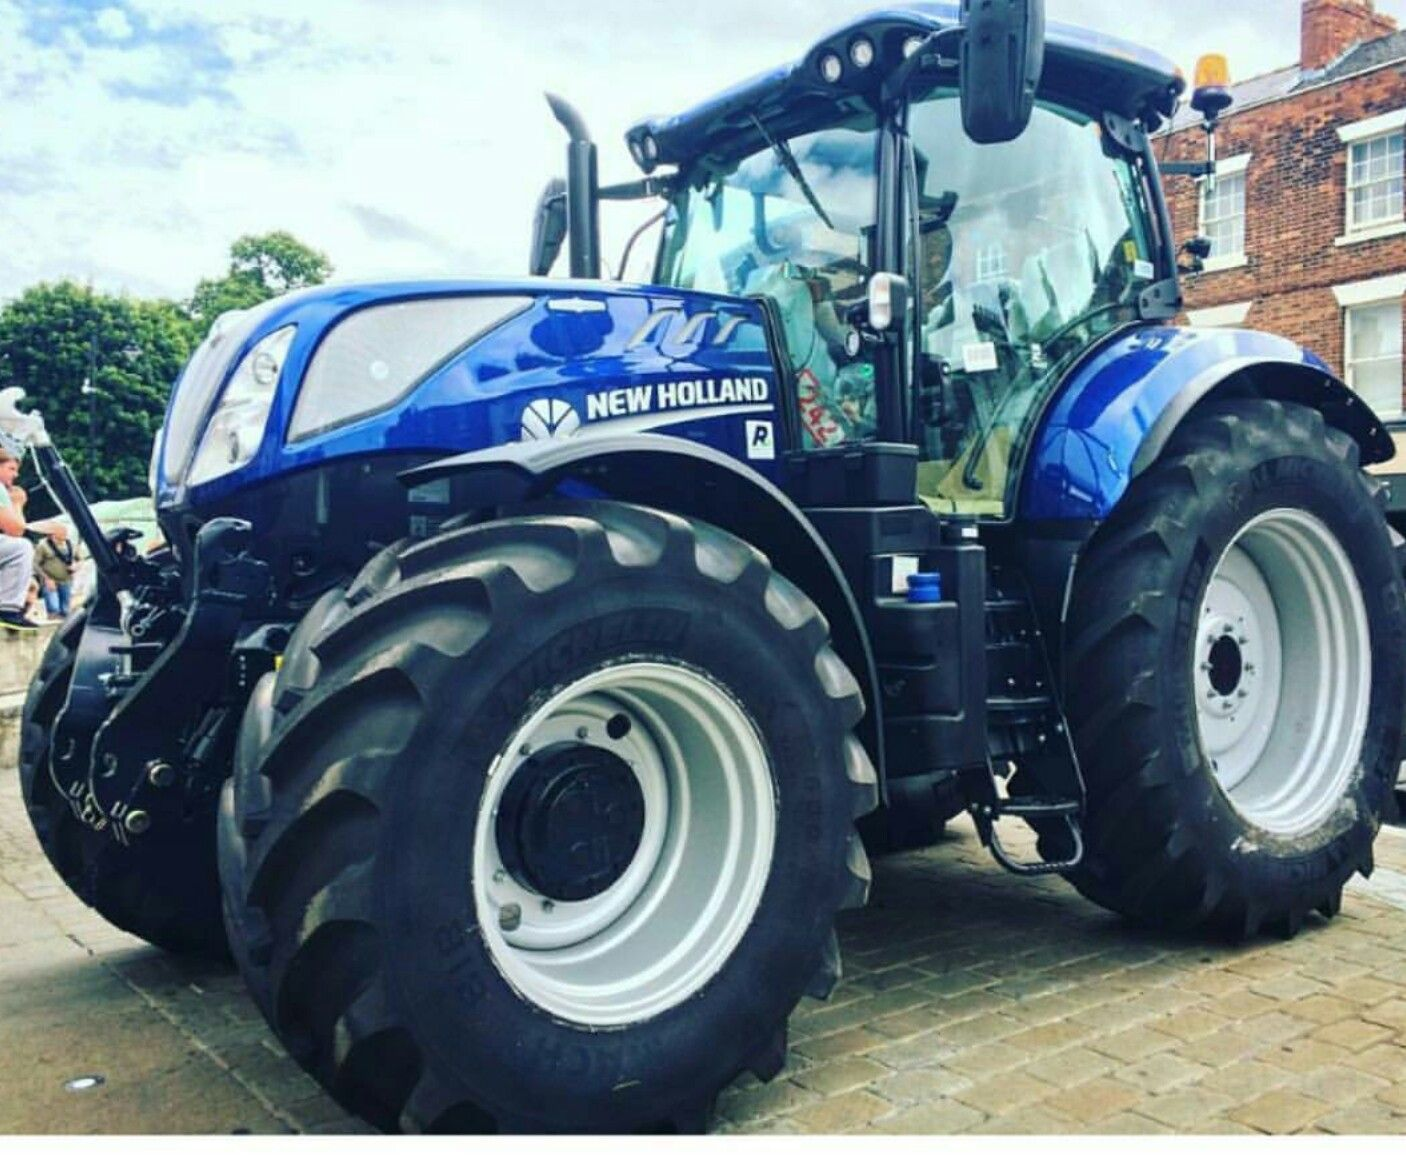 New Holland T7 New Holland Agriculture New Holland Ford New